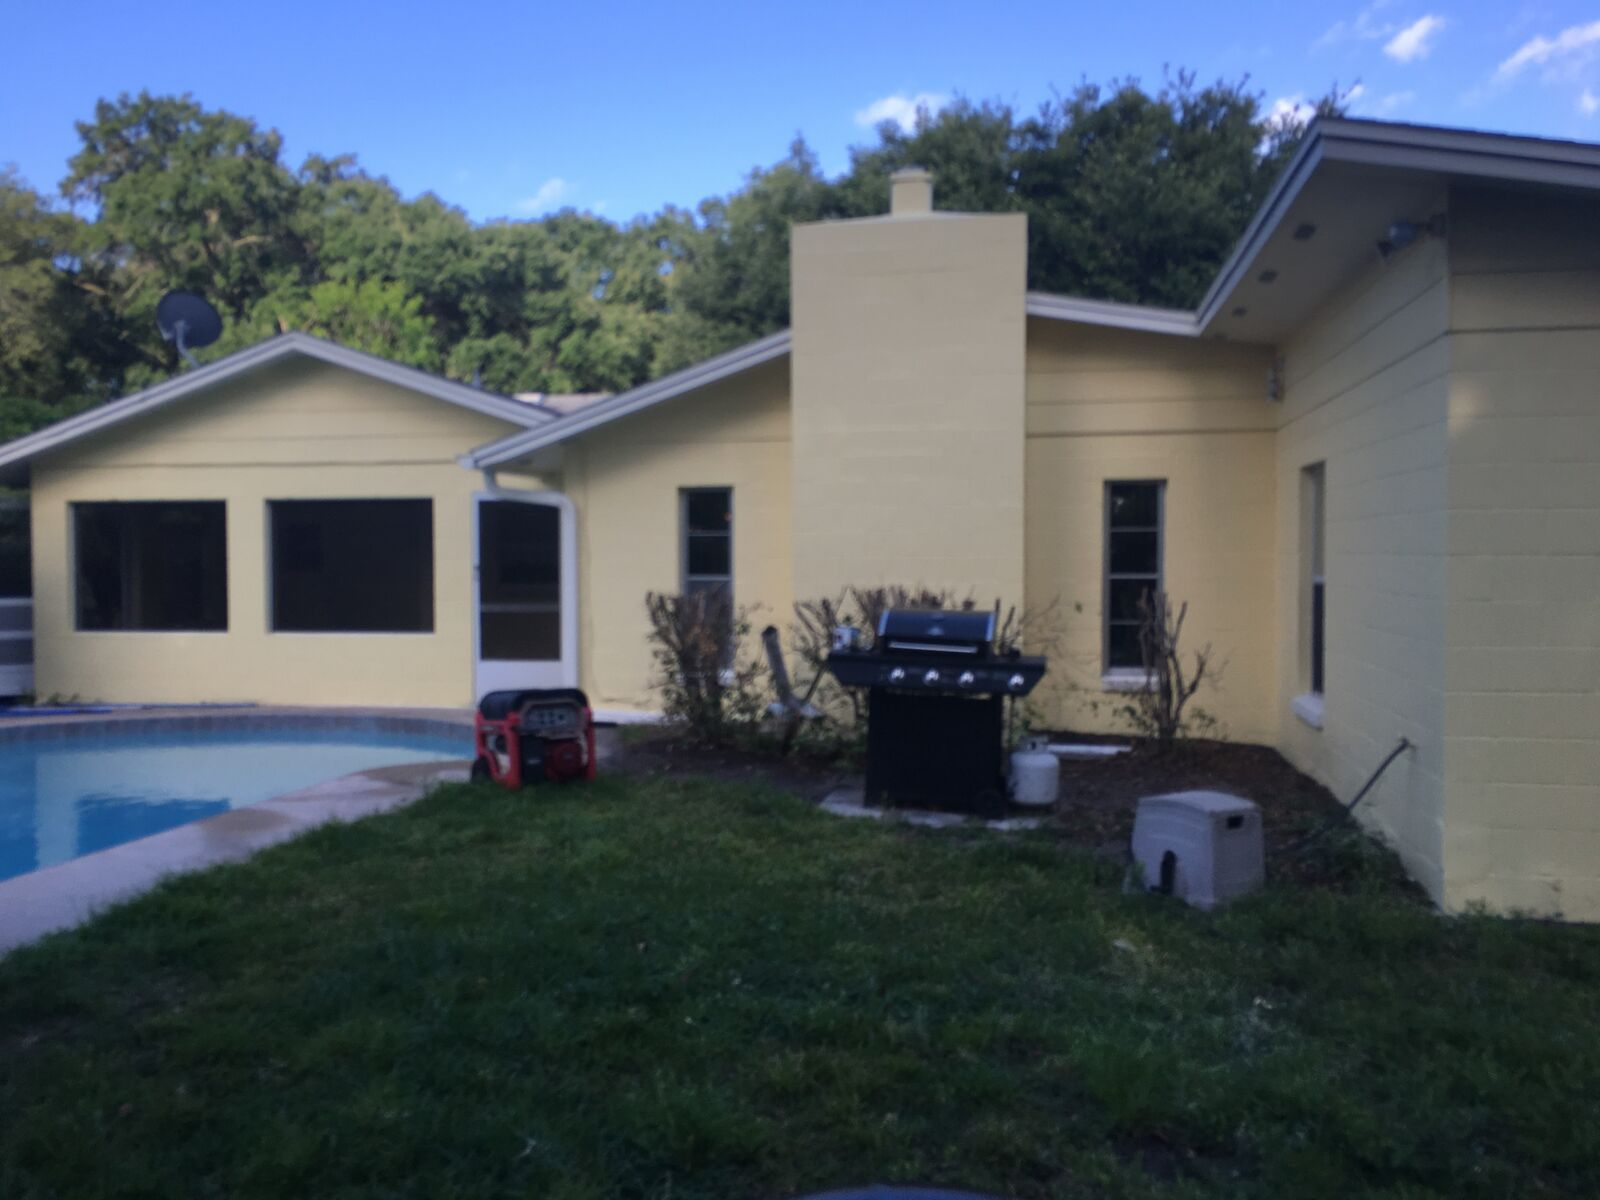 Orange Exterior Paint Exterior Painting Project In Orange County Florida